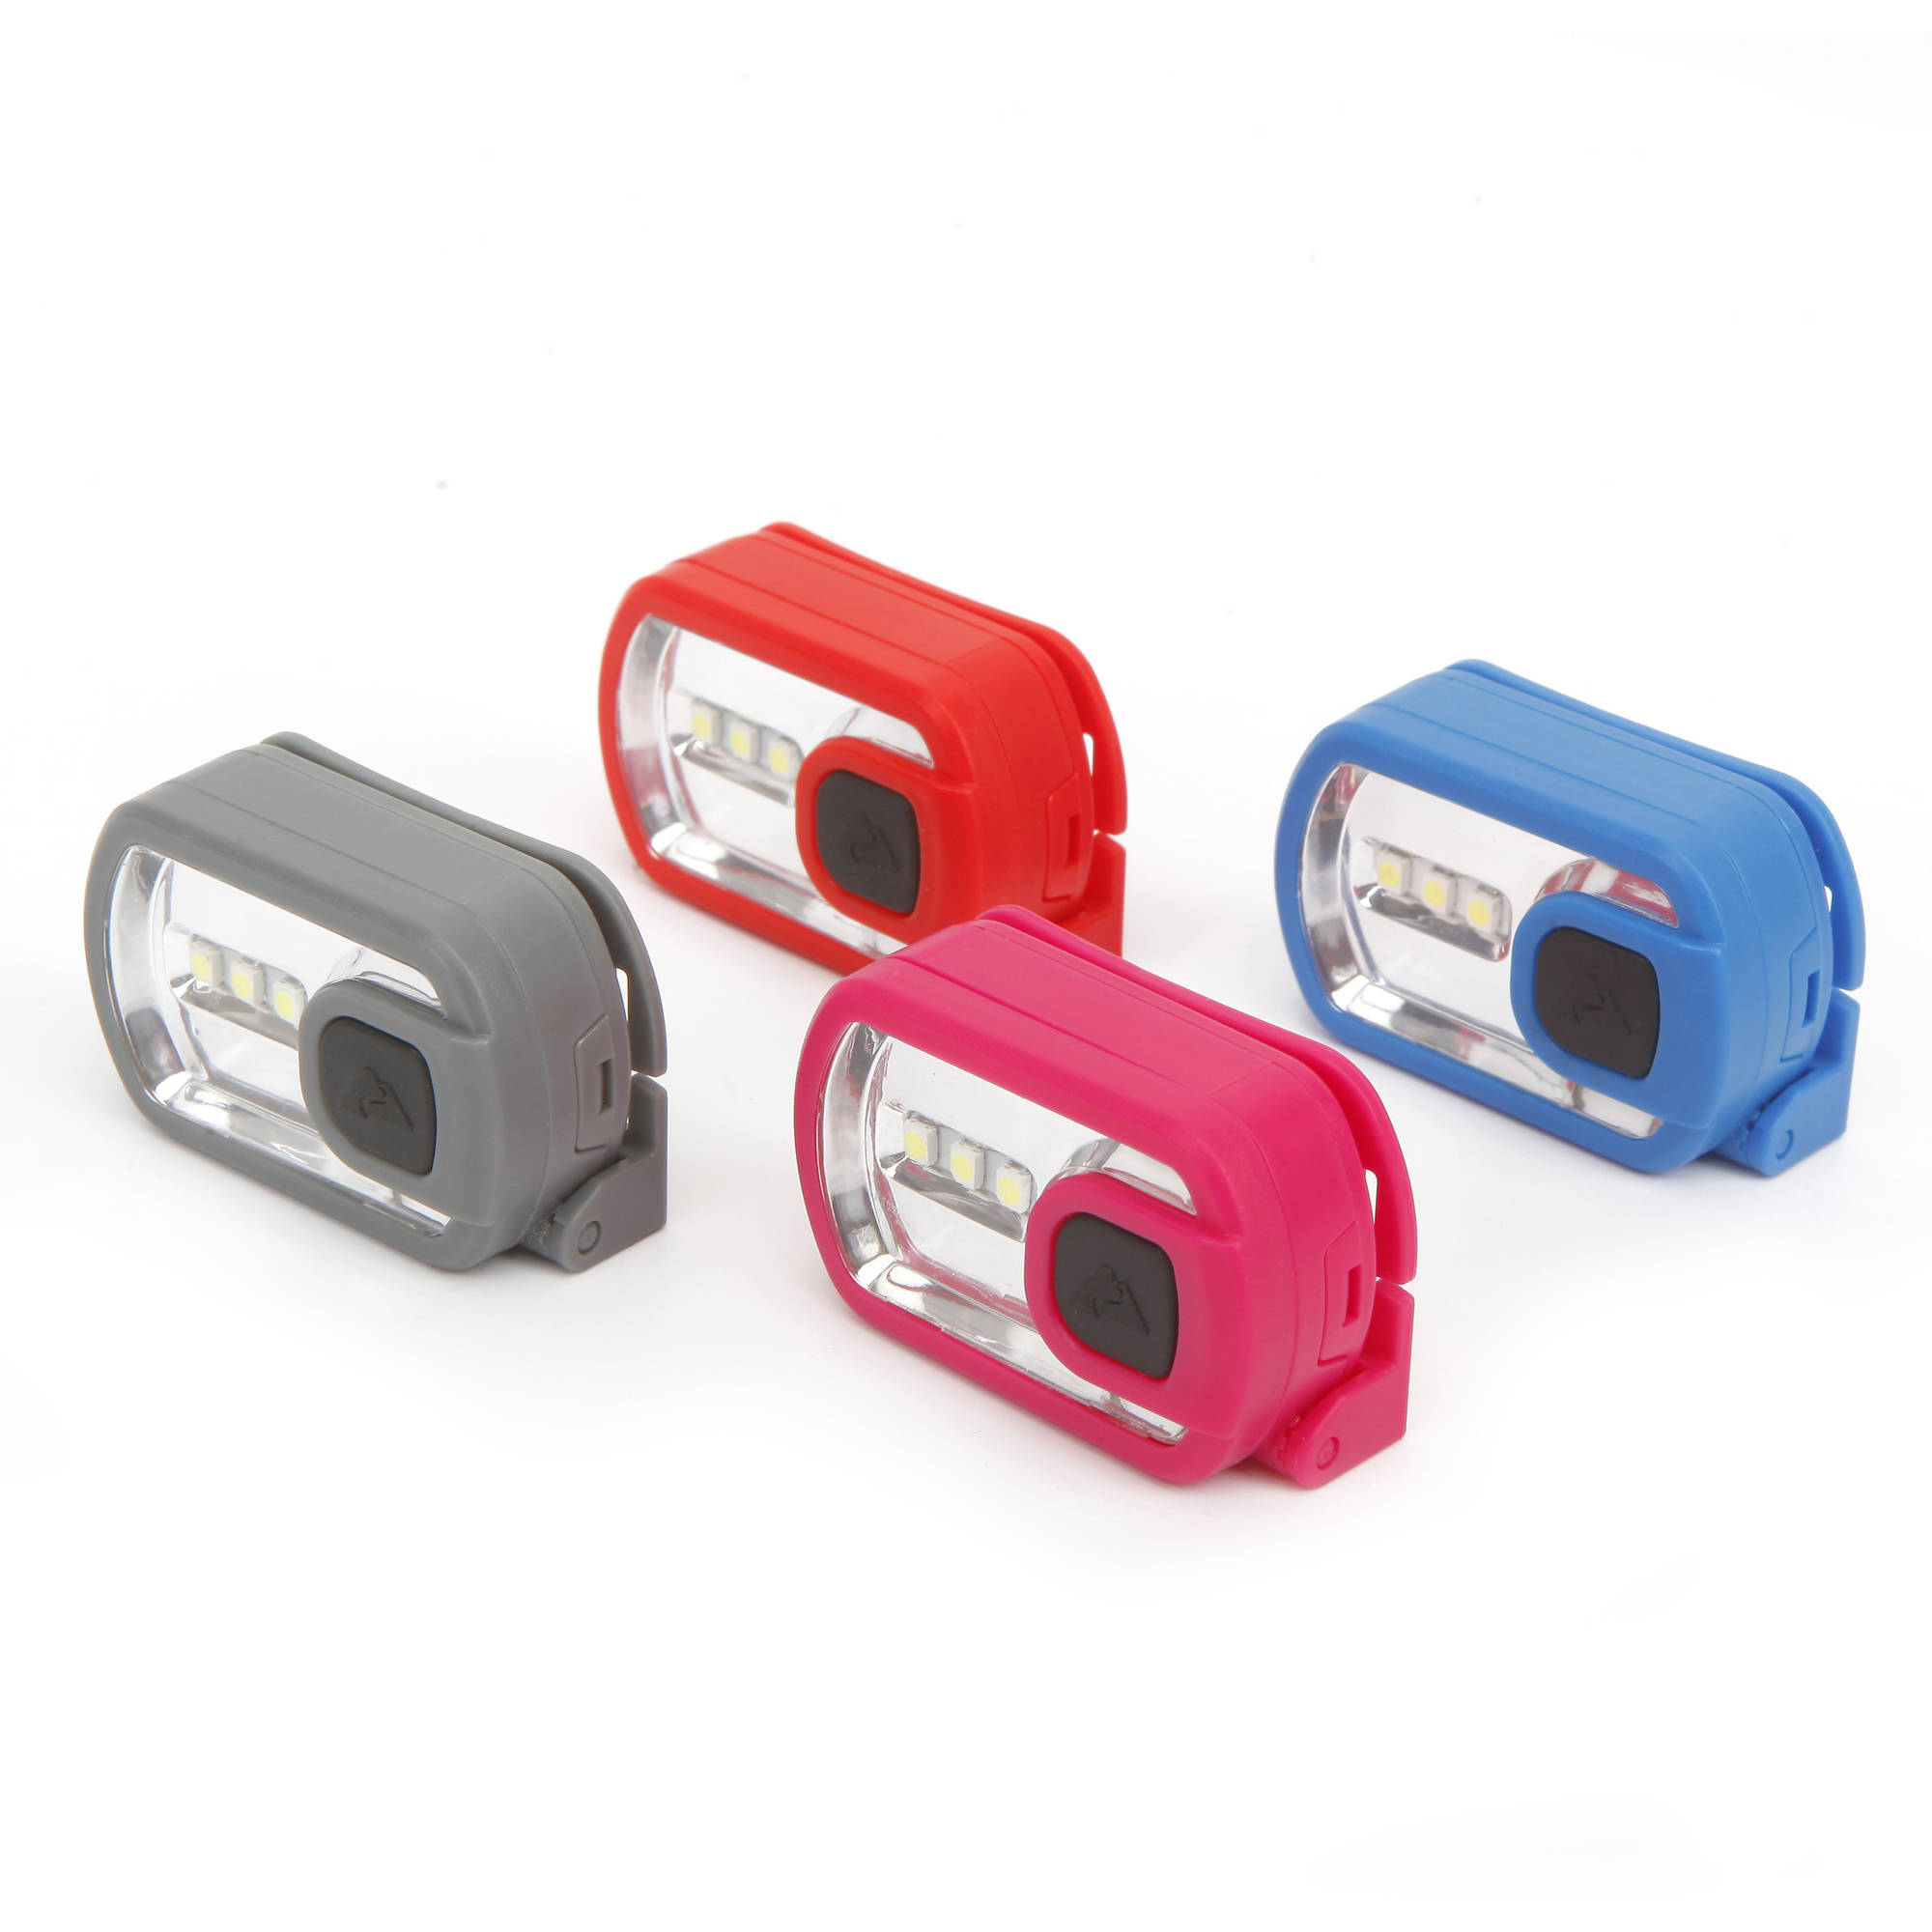 Ozark Trail 10-Pack, 3-LED Headlamp for Camping and Outdoor Use